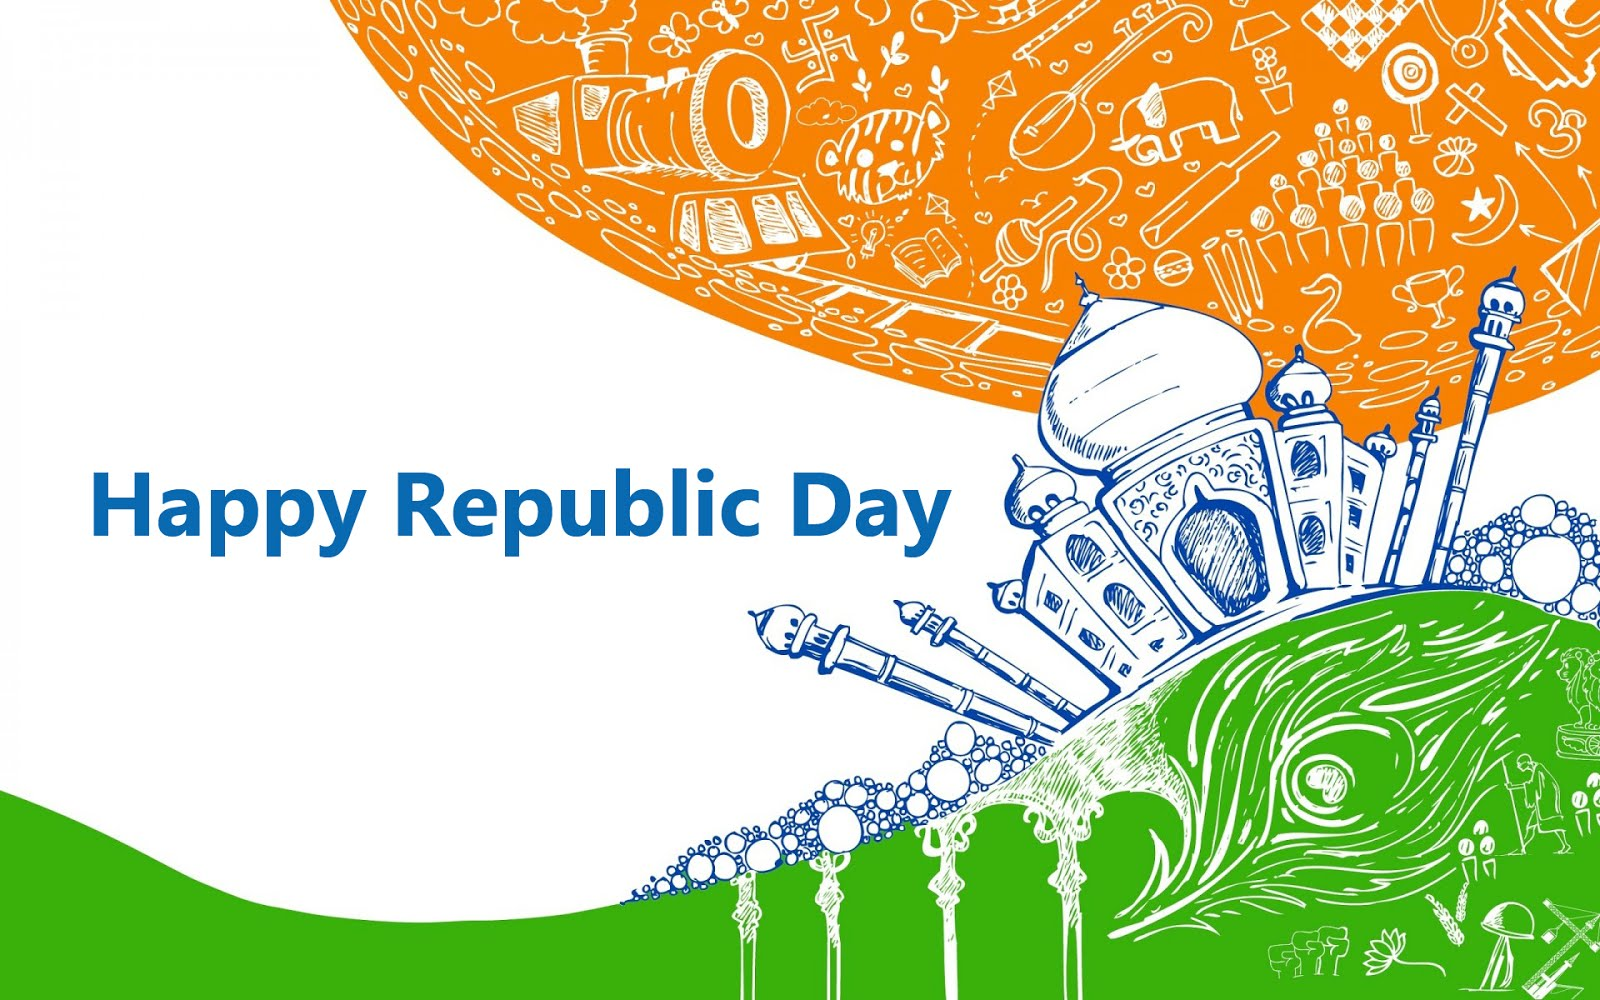 essay on republic day Find long and short paragraph on republic day for your school going kids,   speech recitation, essay writing, drama play, sports and academic activities, etc.